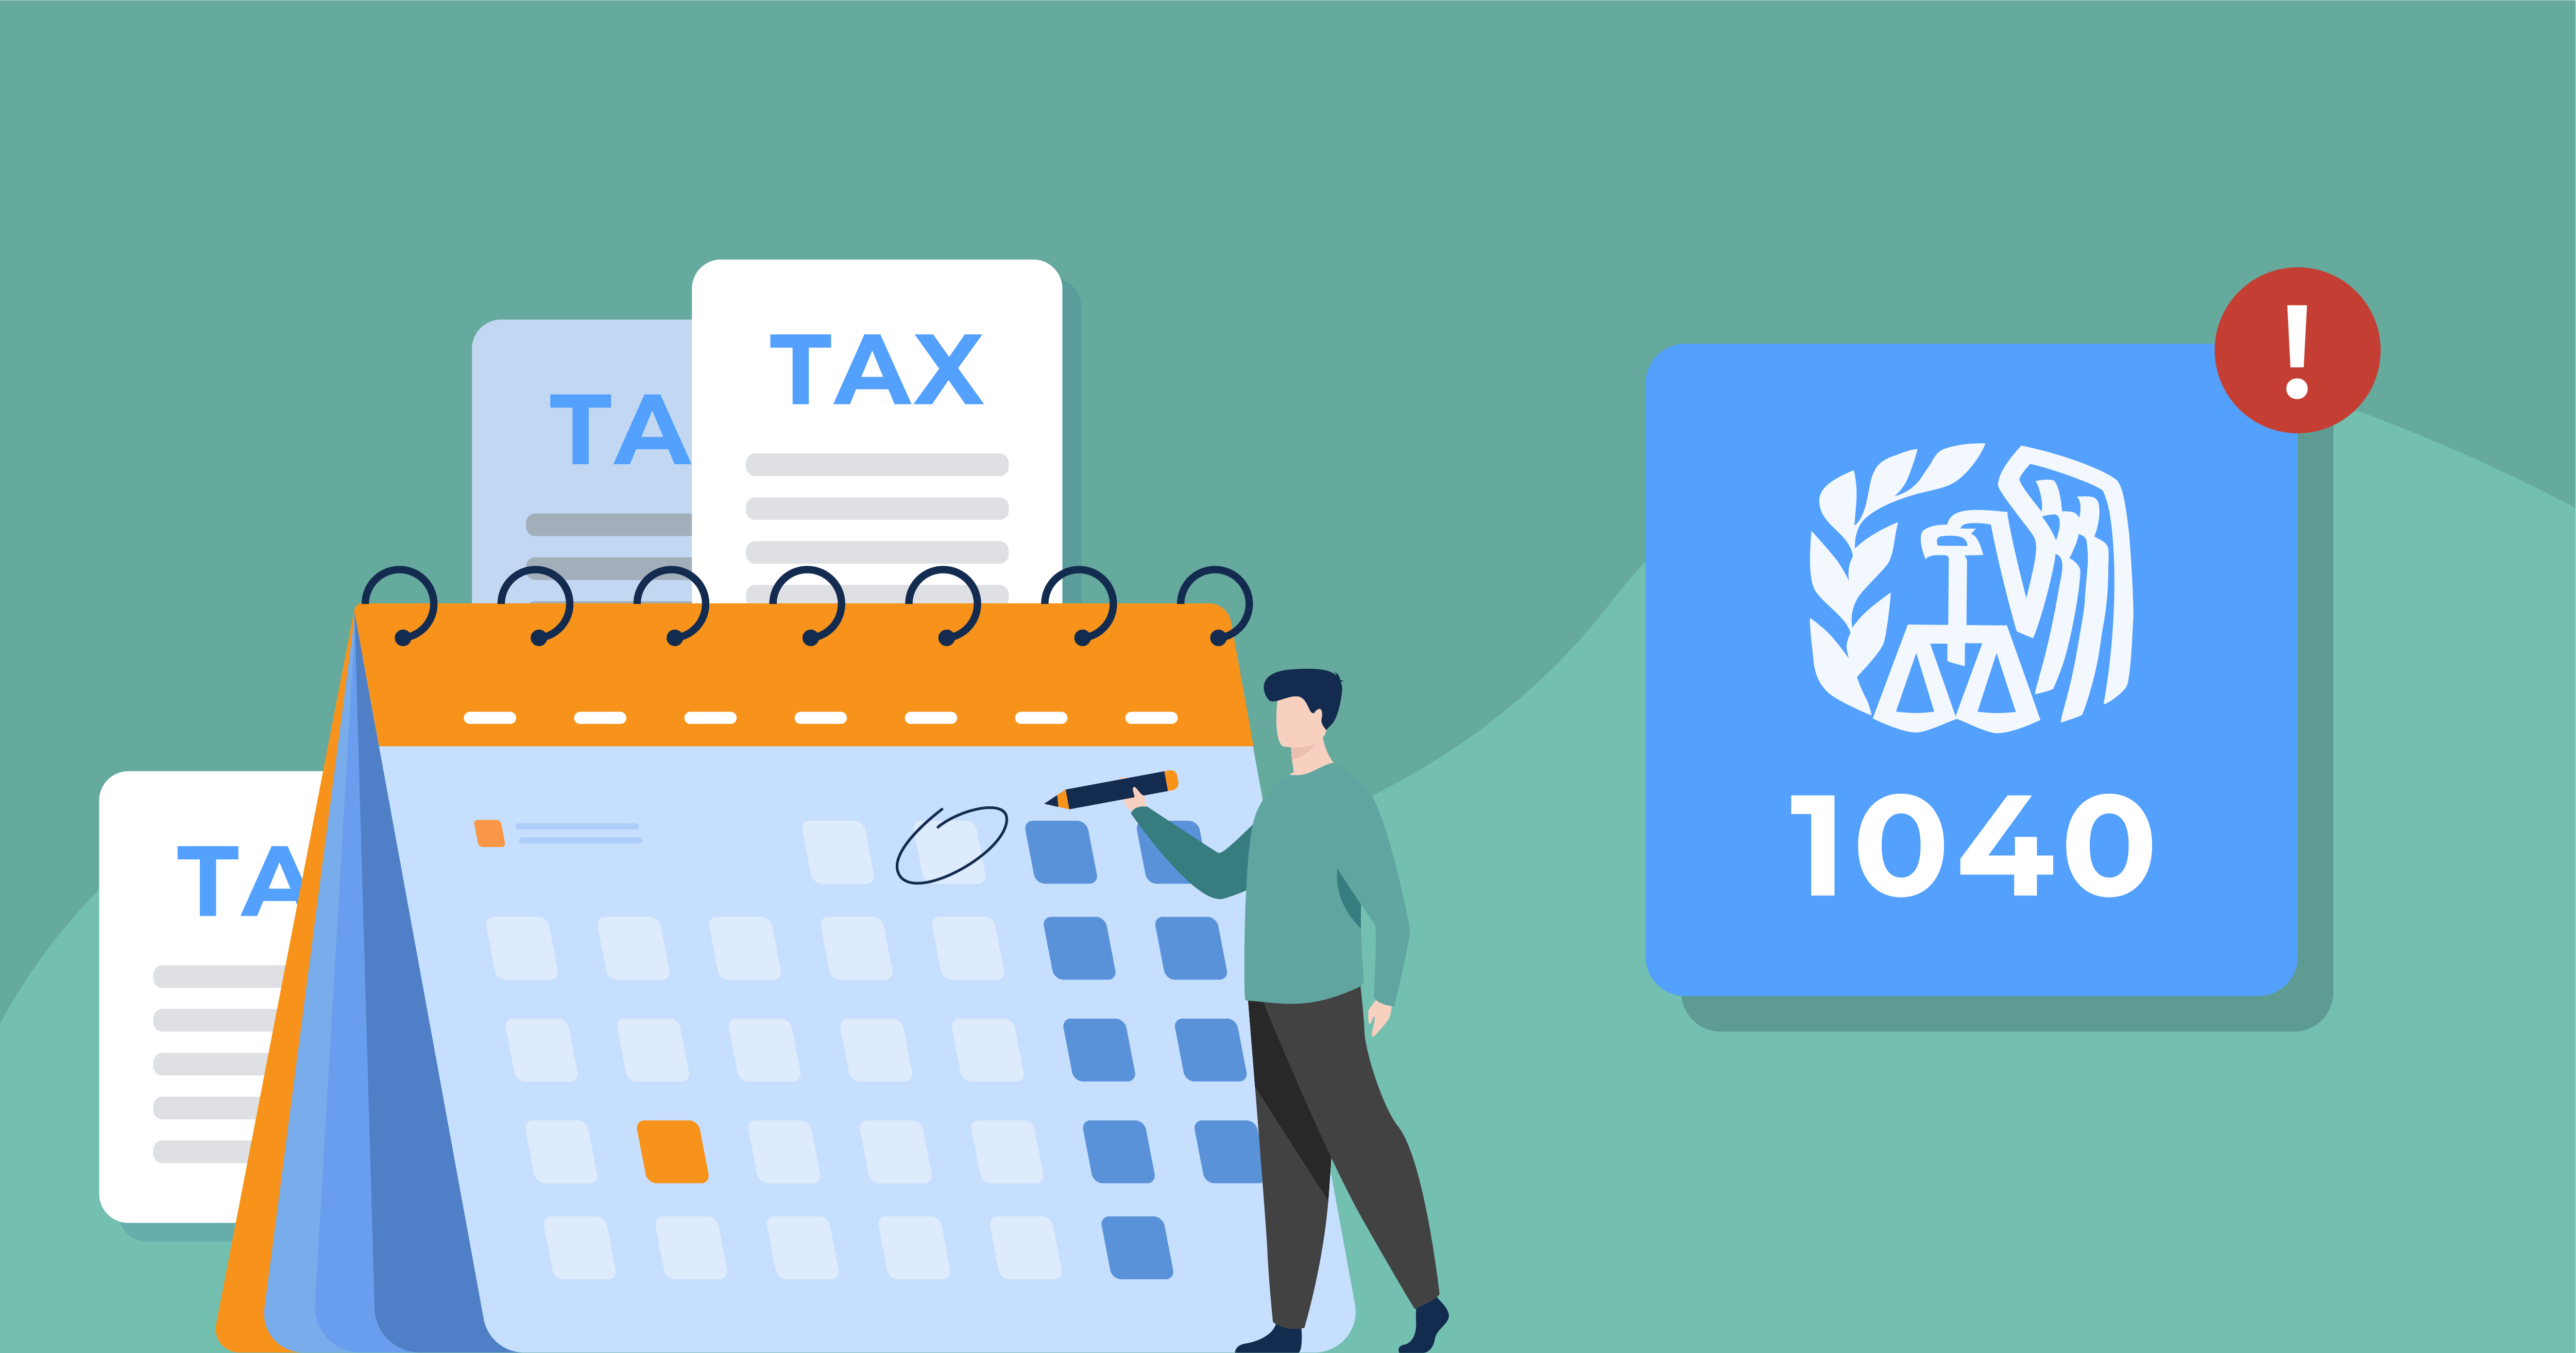 150 Million Taxpayers Will Have to Answer This Cryptocurrency Question on New IRS Tax Form